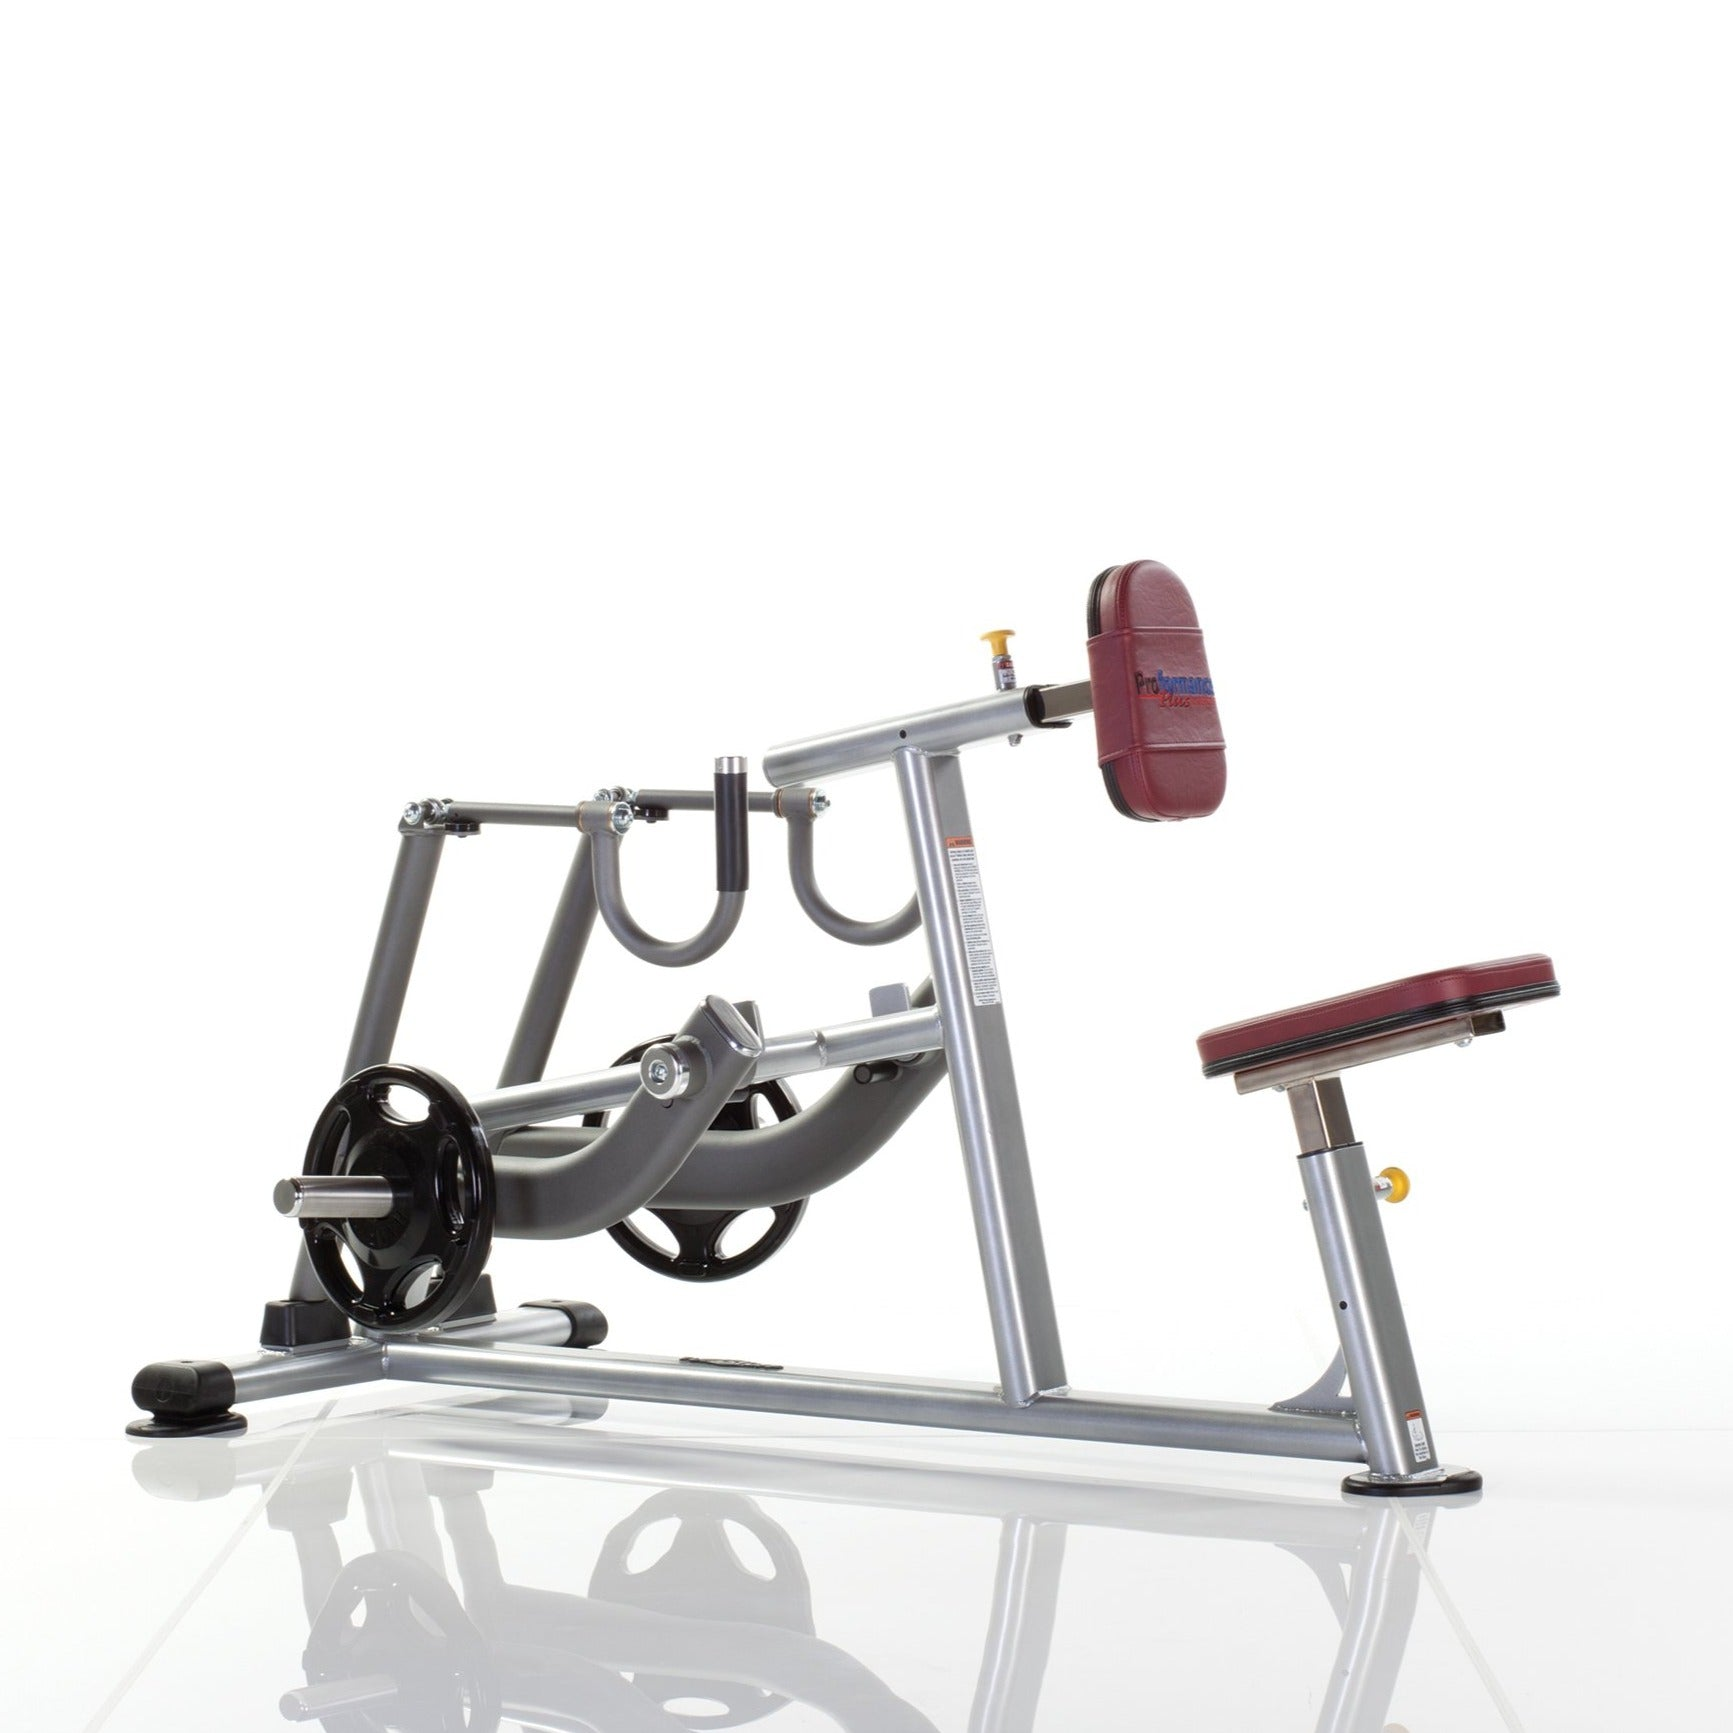 Tuff Stuff Proformance Plus Plate-Loaded Seated Row